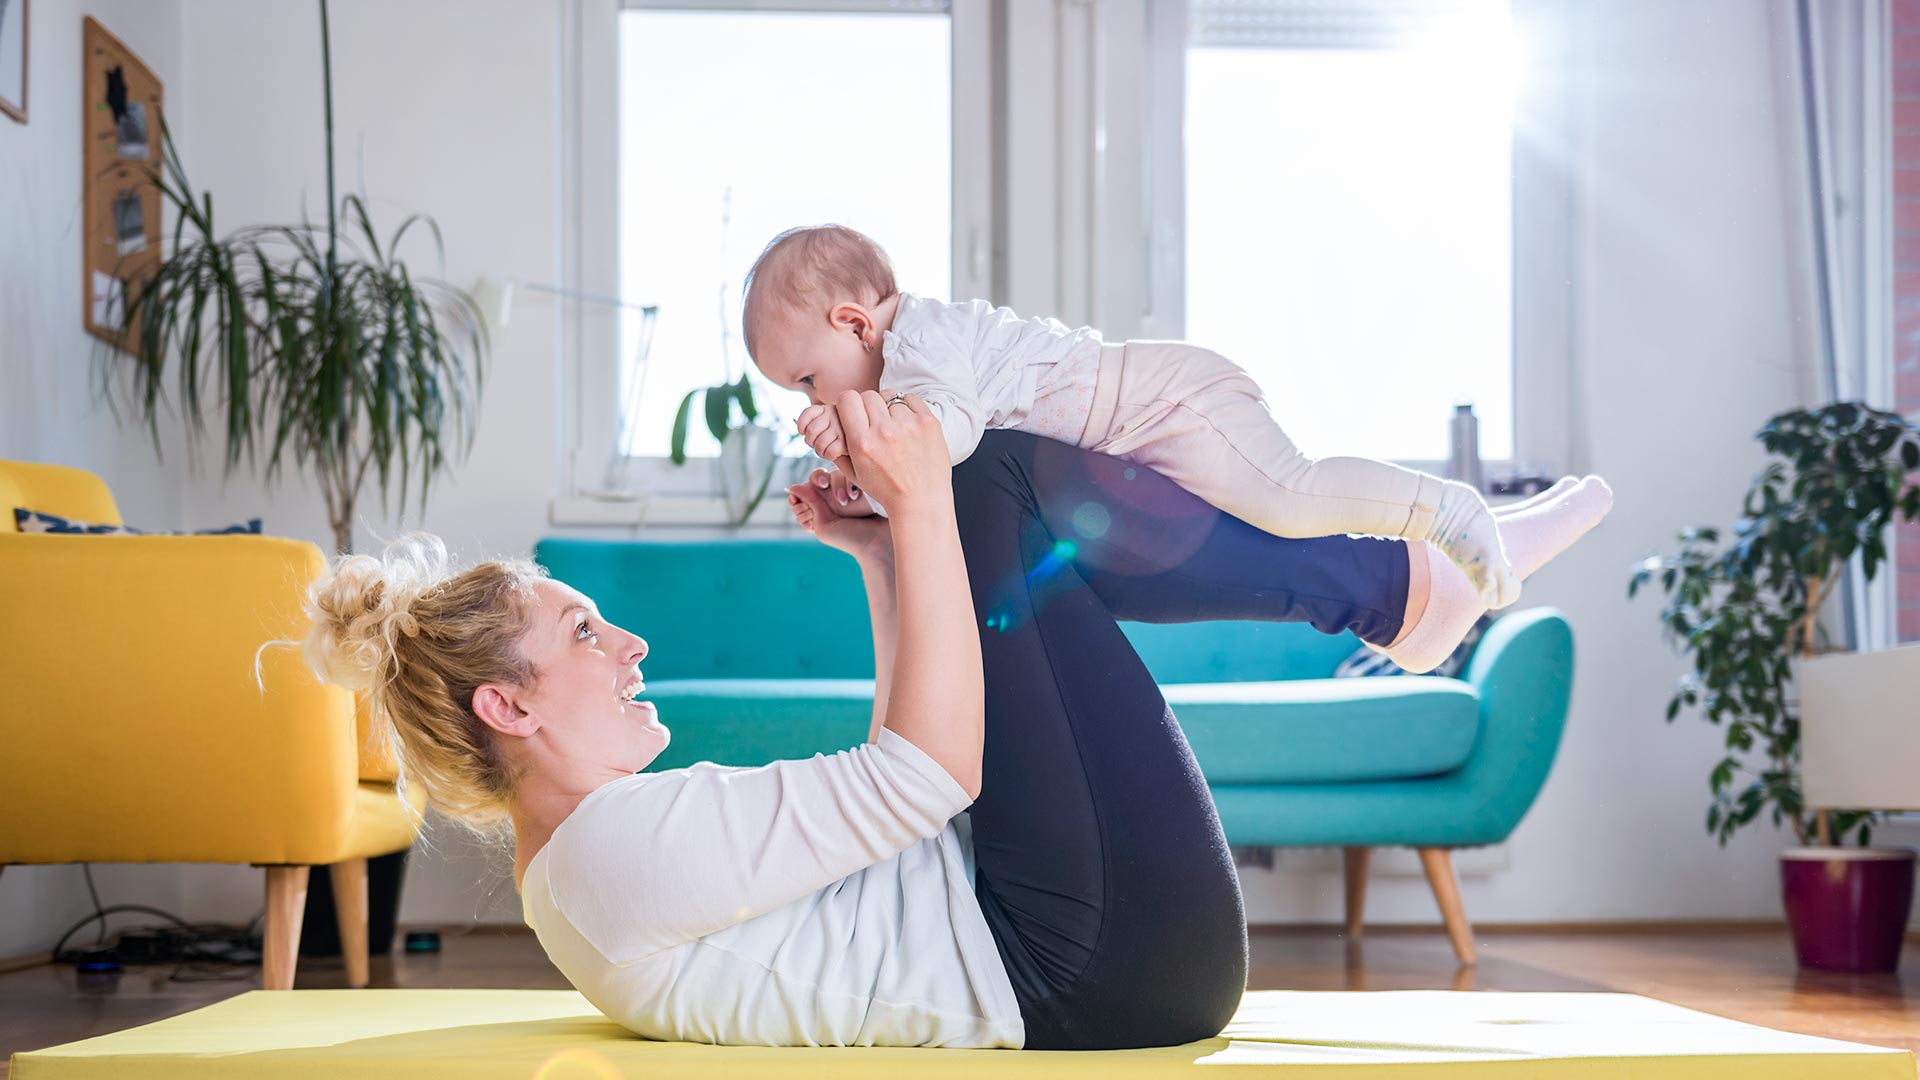 When Can I Start Exercising Again After Having a Baby?